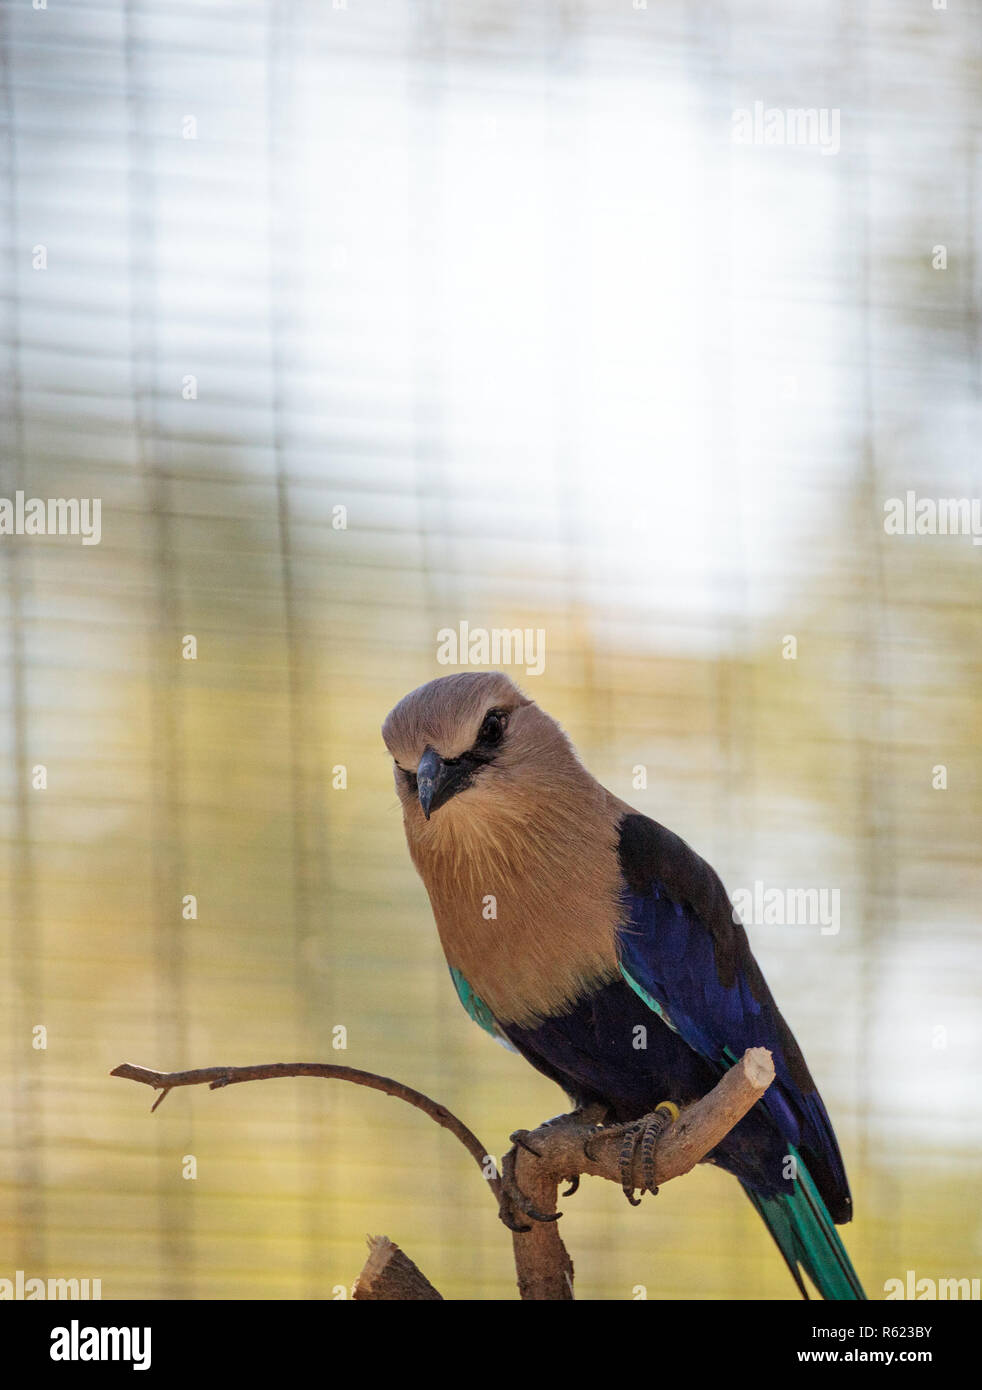 Blue-bellied roller called Coracias cyanogaster - Stock Image